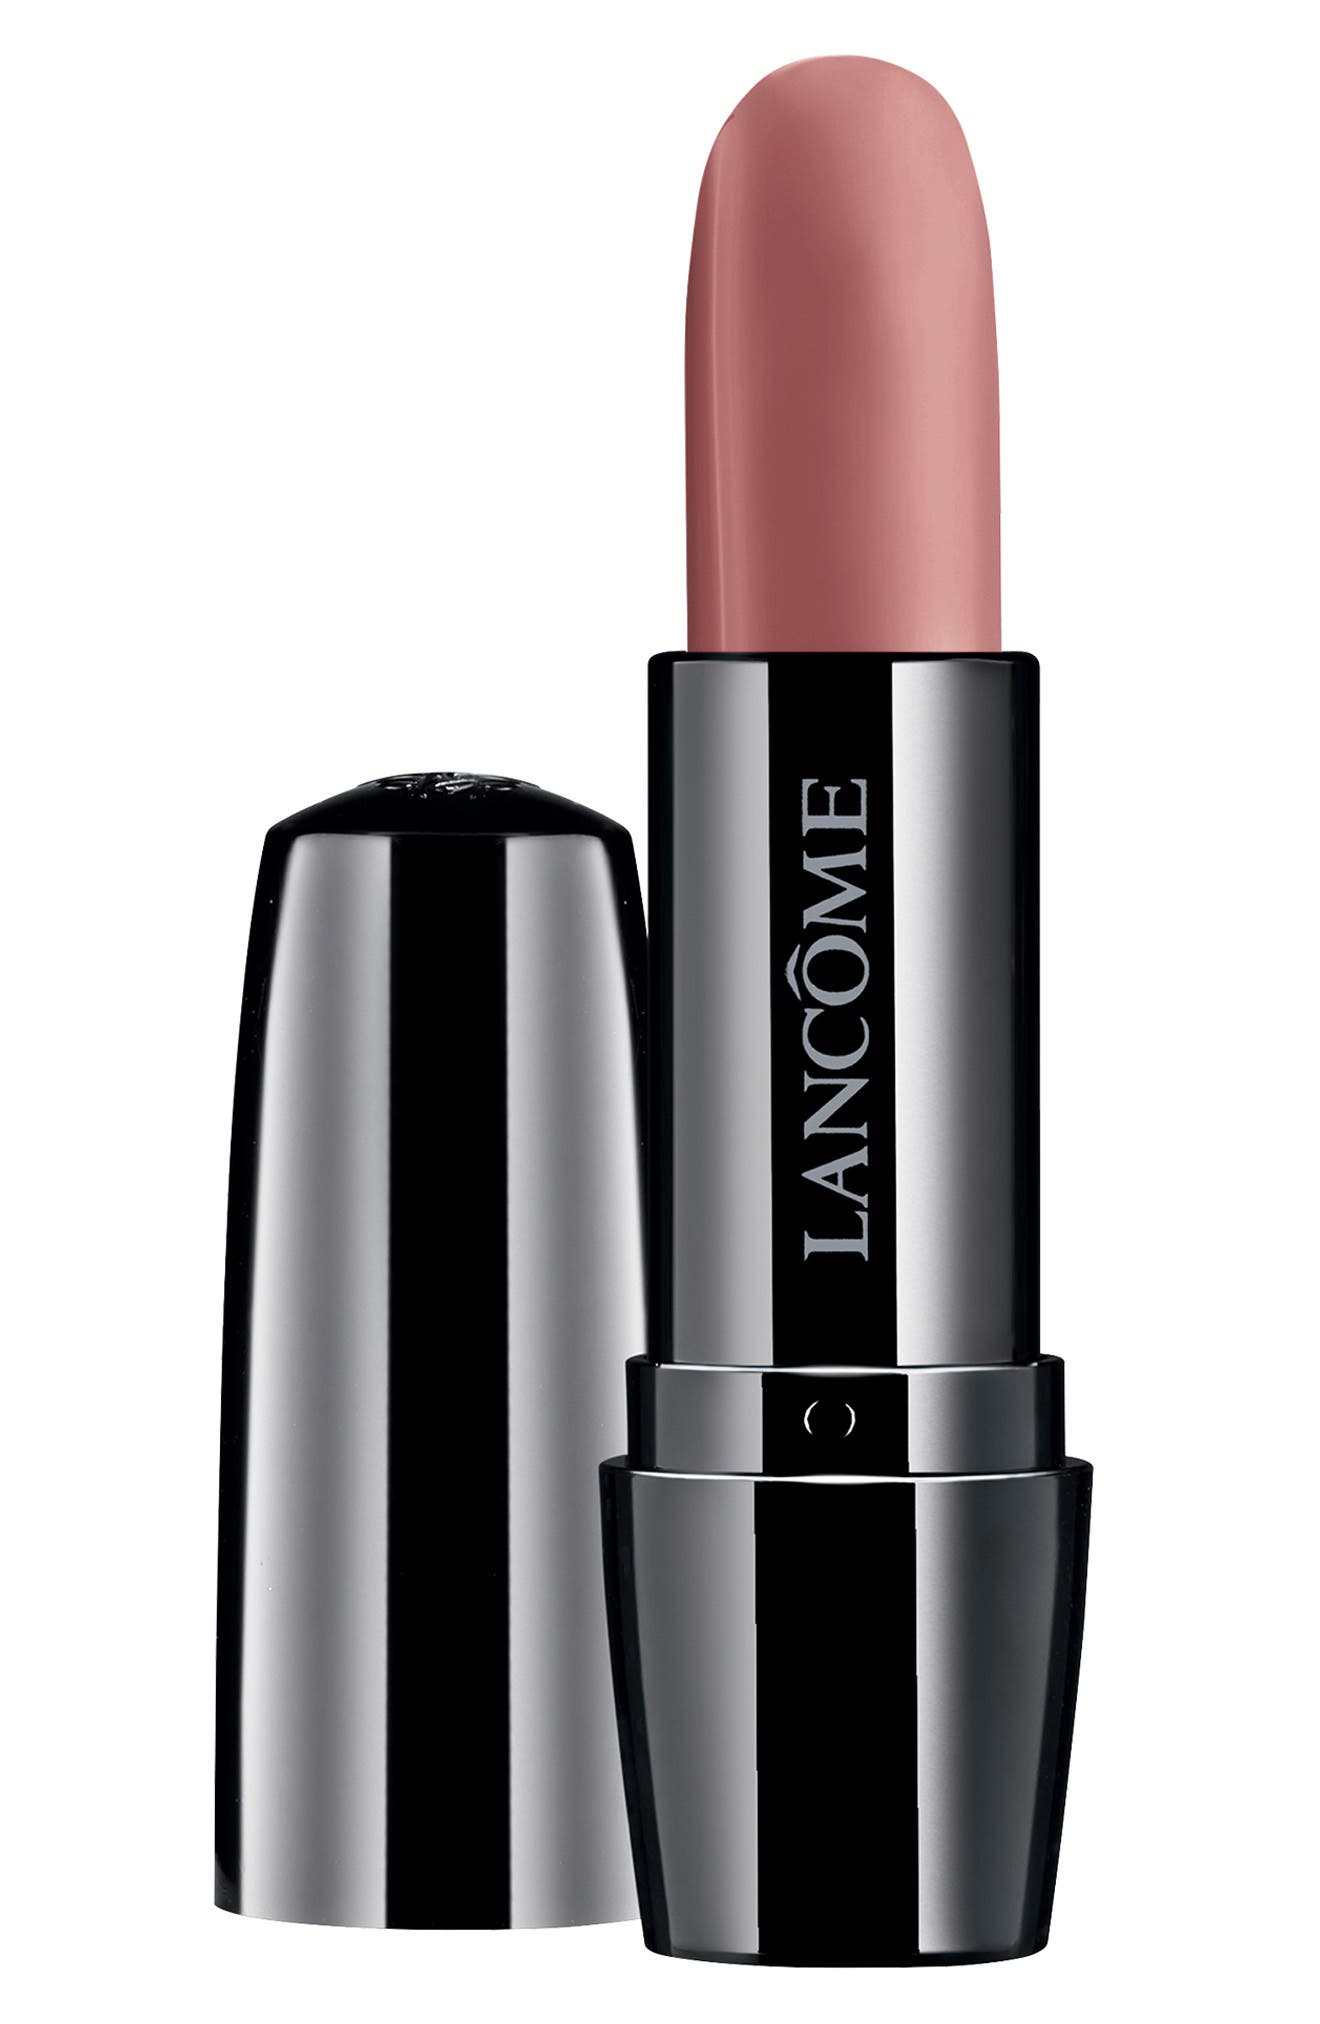 What it is: Dress your lips in Lancome Color Design Lipstick, a full-coverage formula that delivers natural, long-lasting color. Who it\\\'s for: All skin types. What it does: Color Design\\\'s silky-soft, micro-bubble formula glides on easily and evenly while oil-absorbing properties from mica keep skin comfortable and color true. How to use: Line lips then apply lip color using a lip brush. Layer with gloss if more shine is desired. For